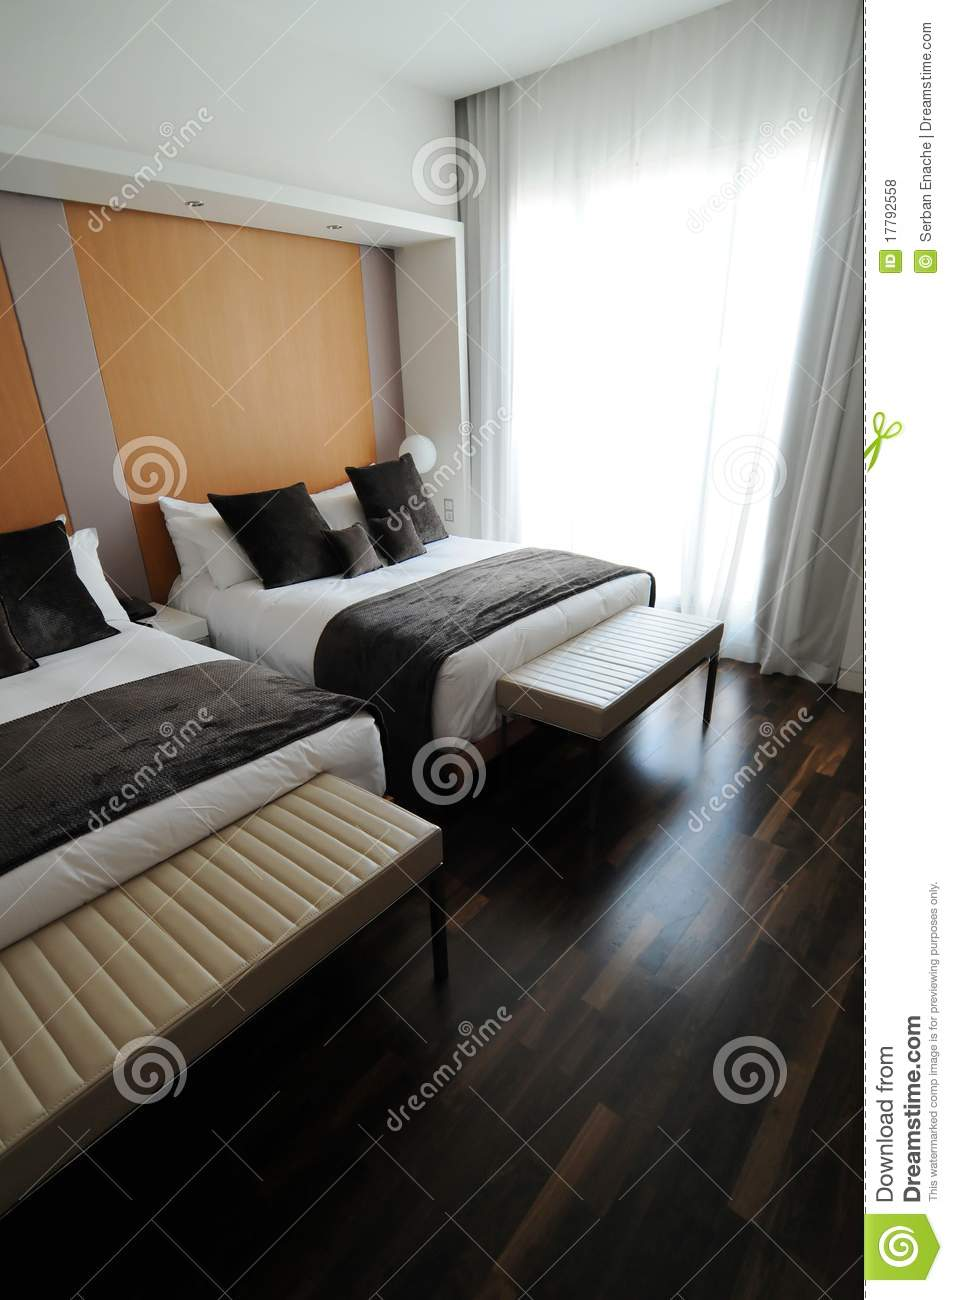 Twin Bed Hotel Room: Double Beds In Hotel Stock Photo. Image Of Twin